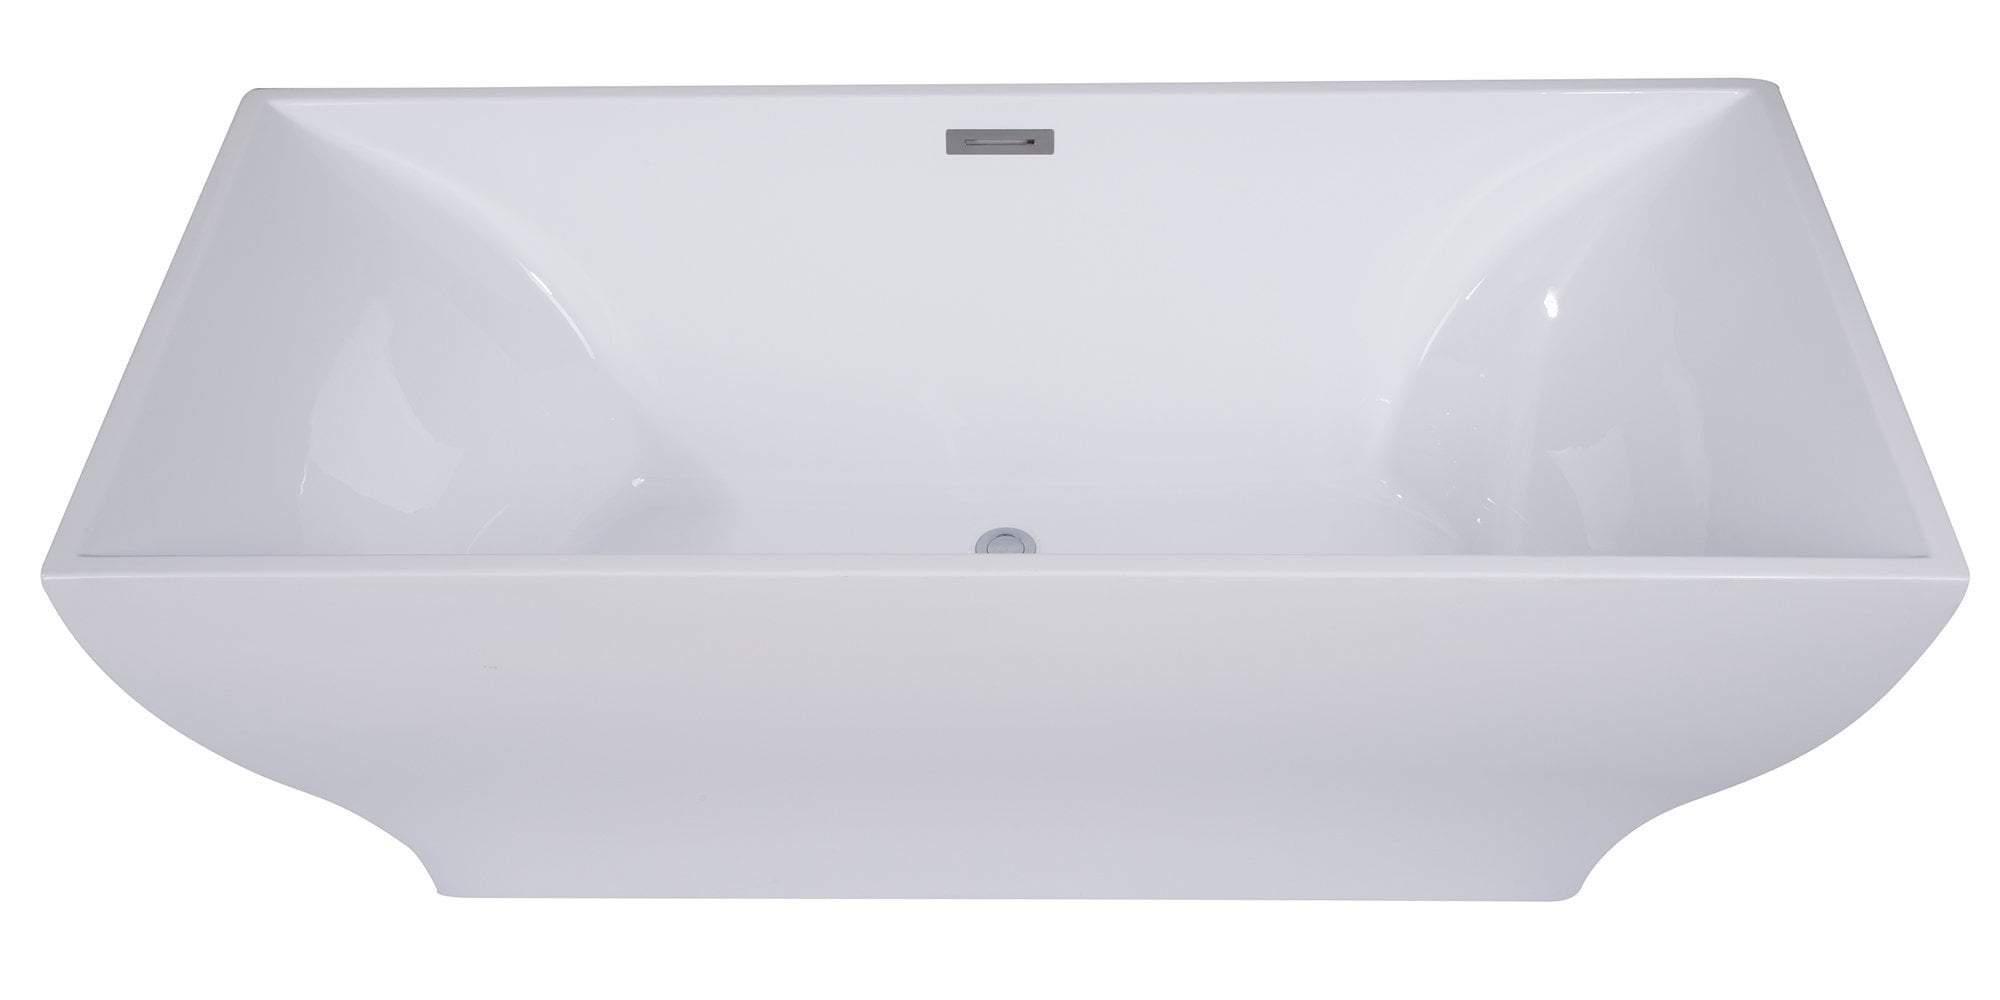 67 inch White Rectangular Acrylic Free Standing Soaking Bathtub